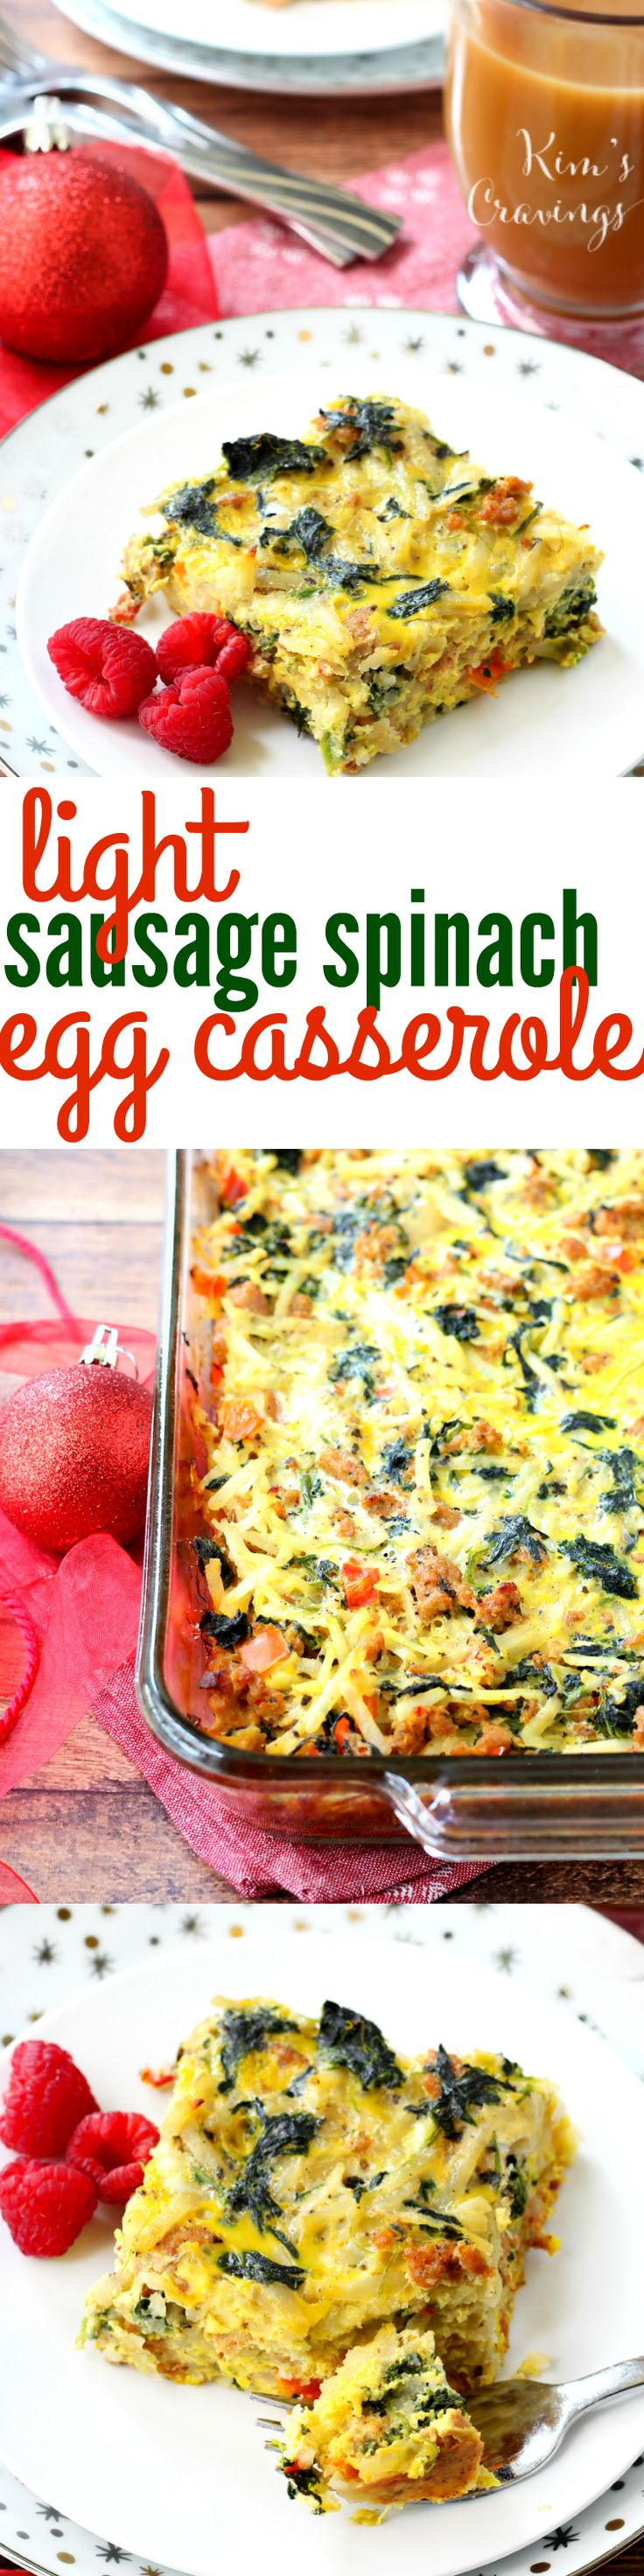 This Light Sausage Spinach Egg Casserole is the perfect make-ahead breakfast to enjoy Christmas morning. Comforting and flavorful, this dish will fuel all that gift-giving! @biglots #ad #BigLots #BIGseason